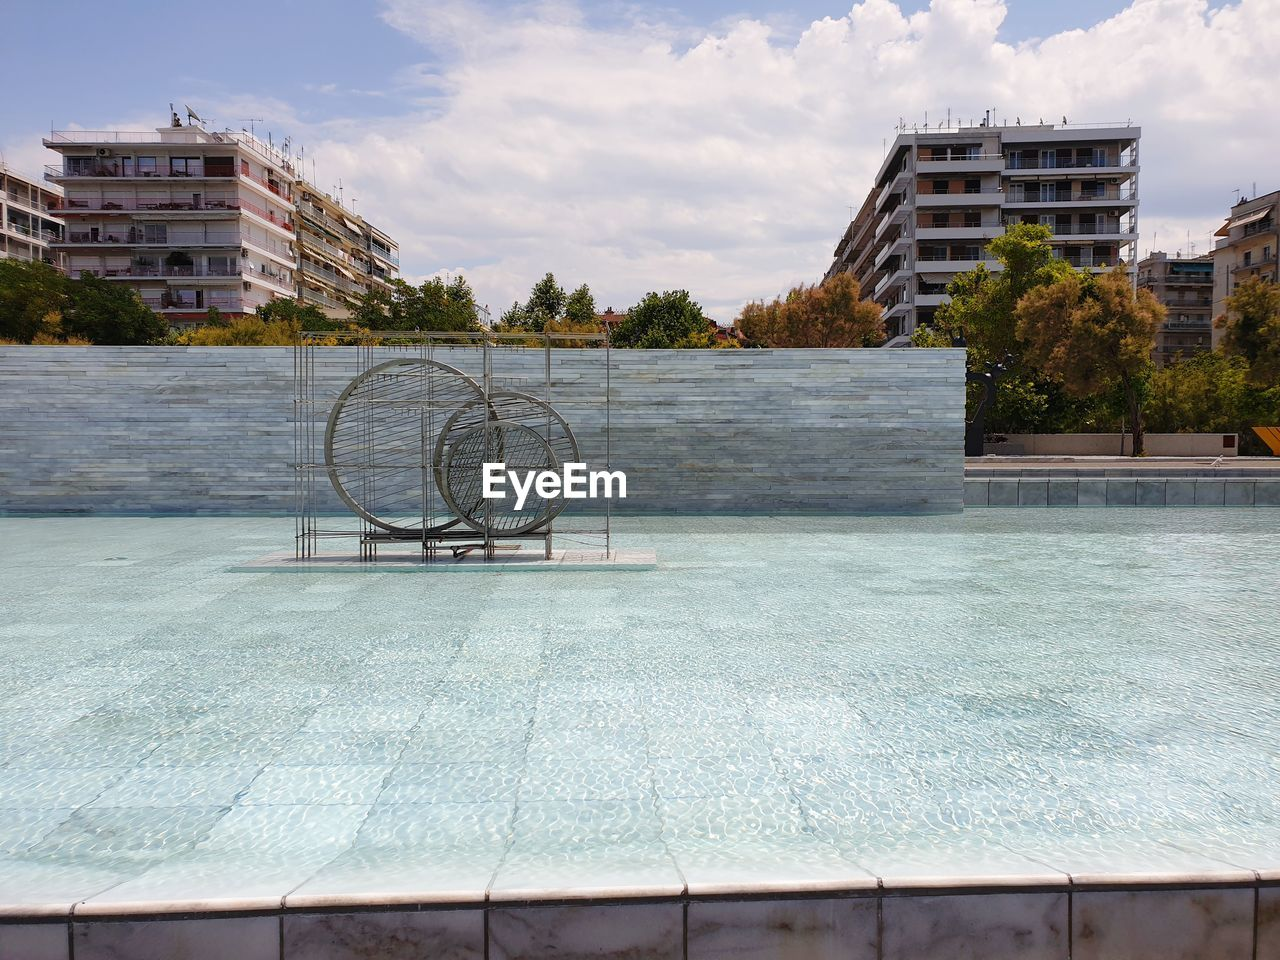 BICYCLE BY SWIMMING POOL AGAINST BUILDING IN CITY